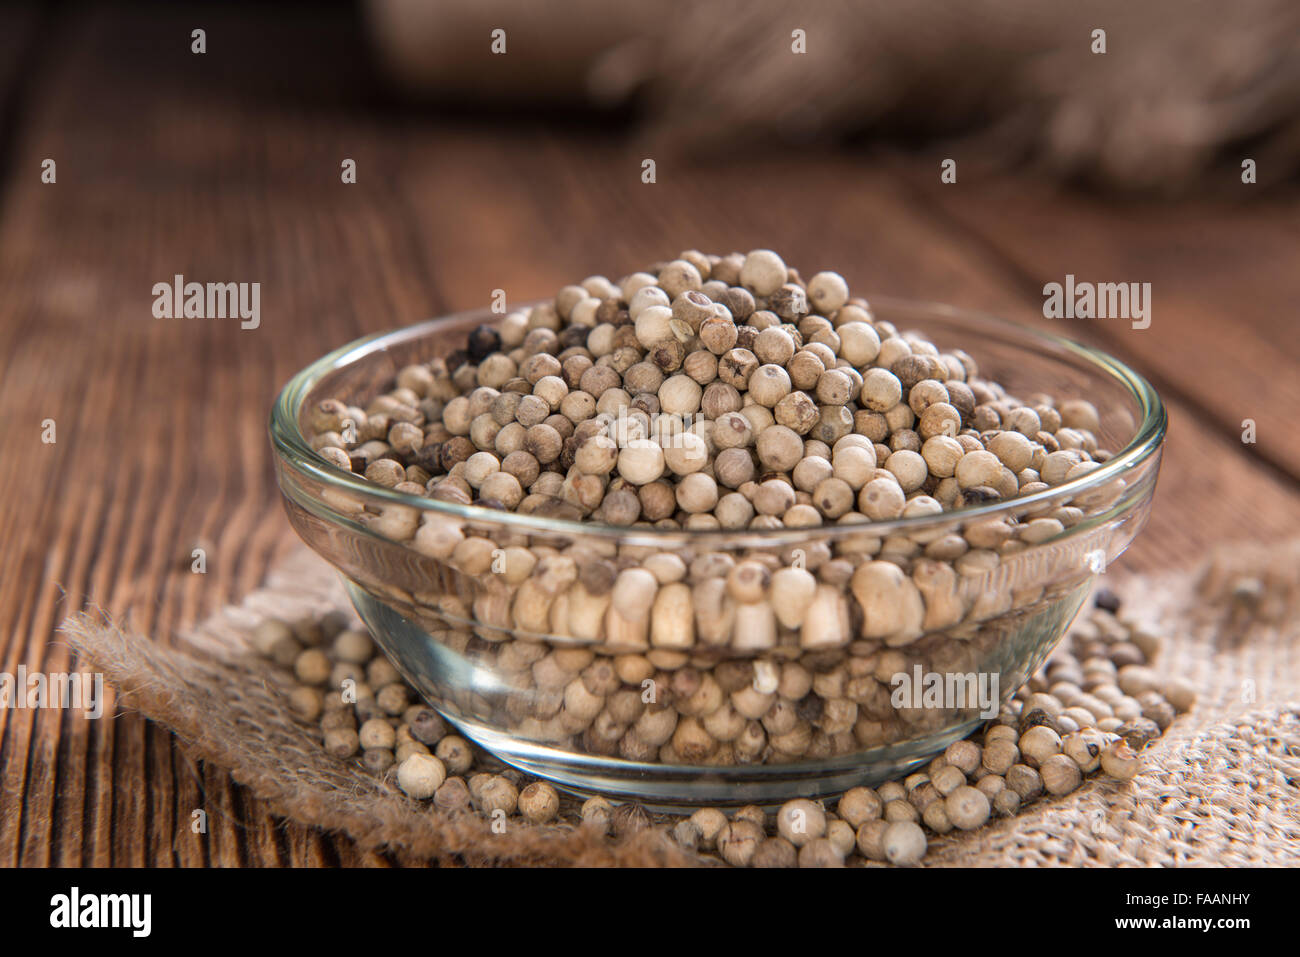 Some white Peppercorns (close-up shot) on wooden background - Stock Image